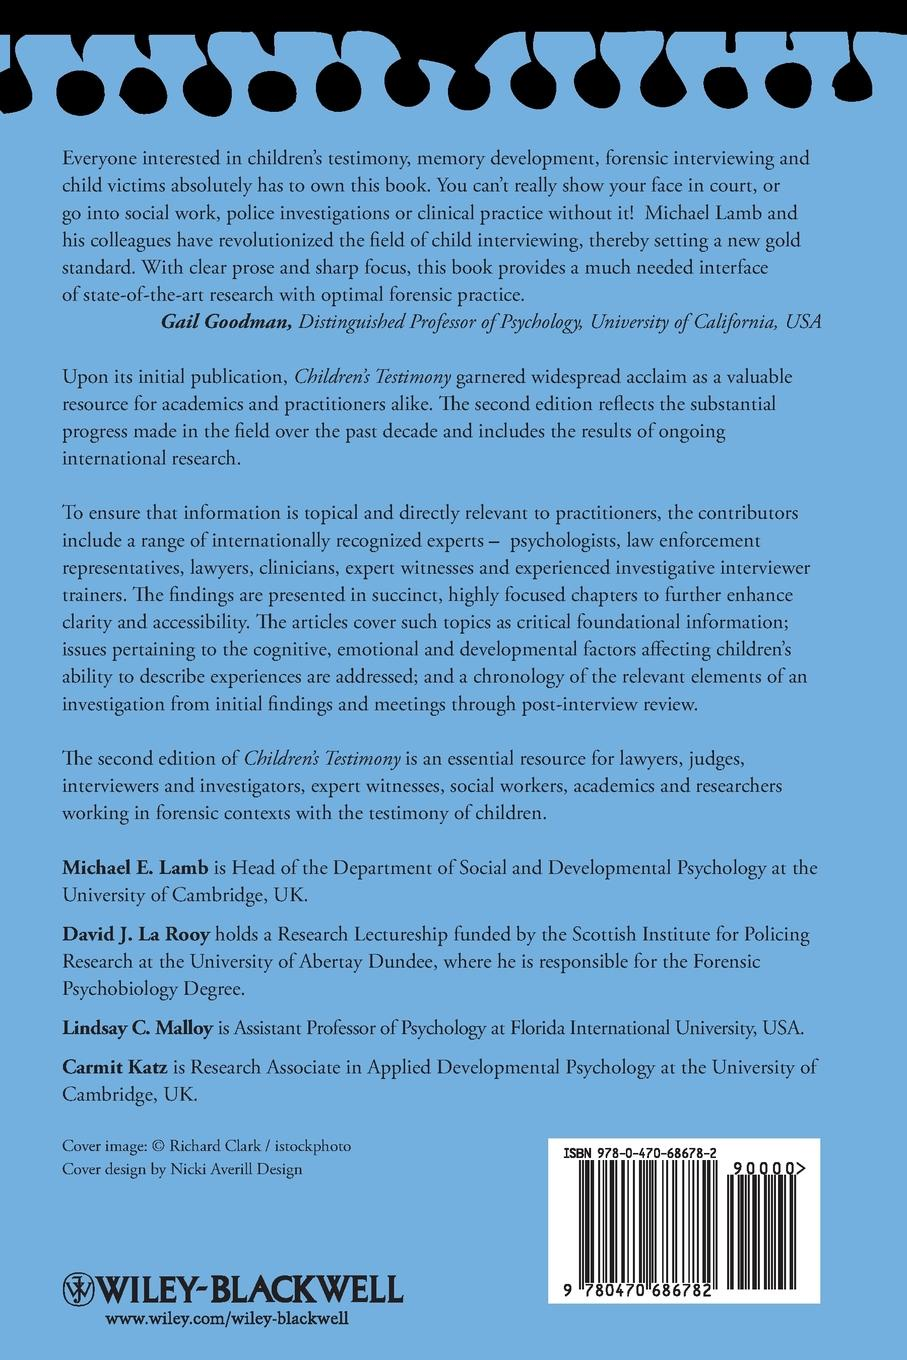 Children's Testimony. A Handbook of Psychological Research and Forensic Practice quality of life research and practice